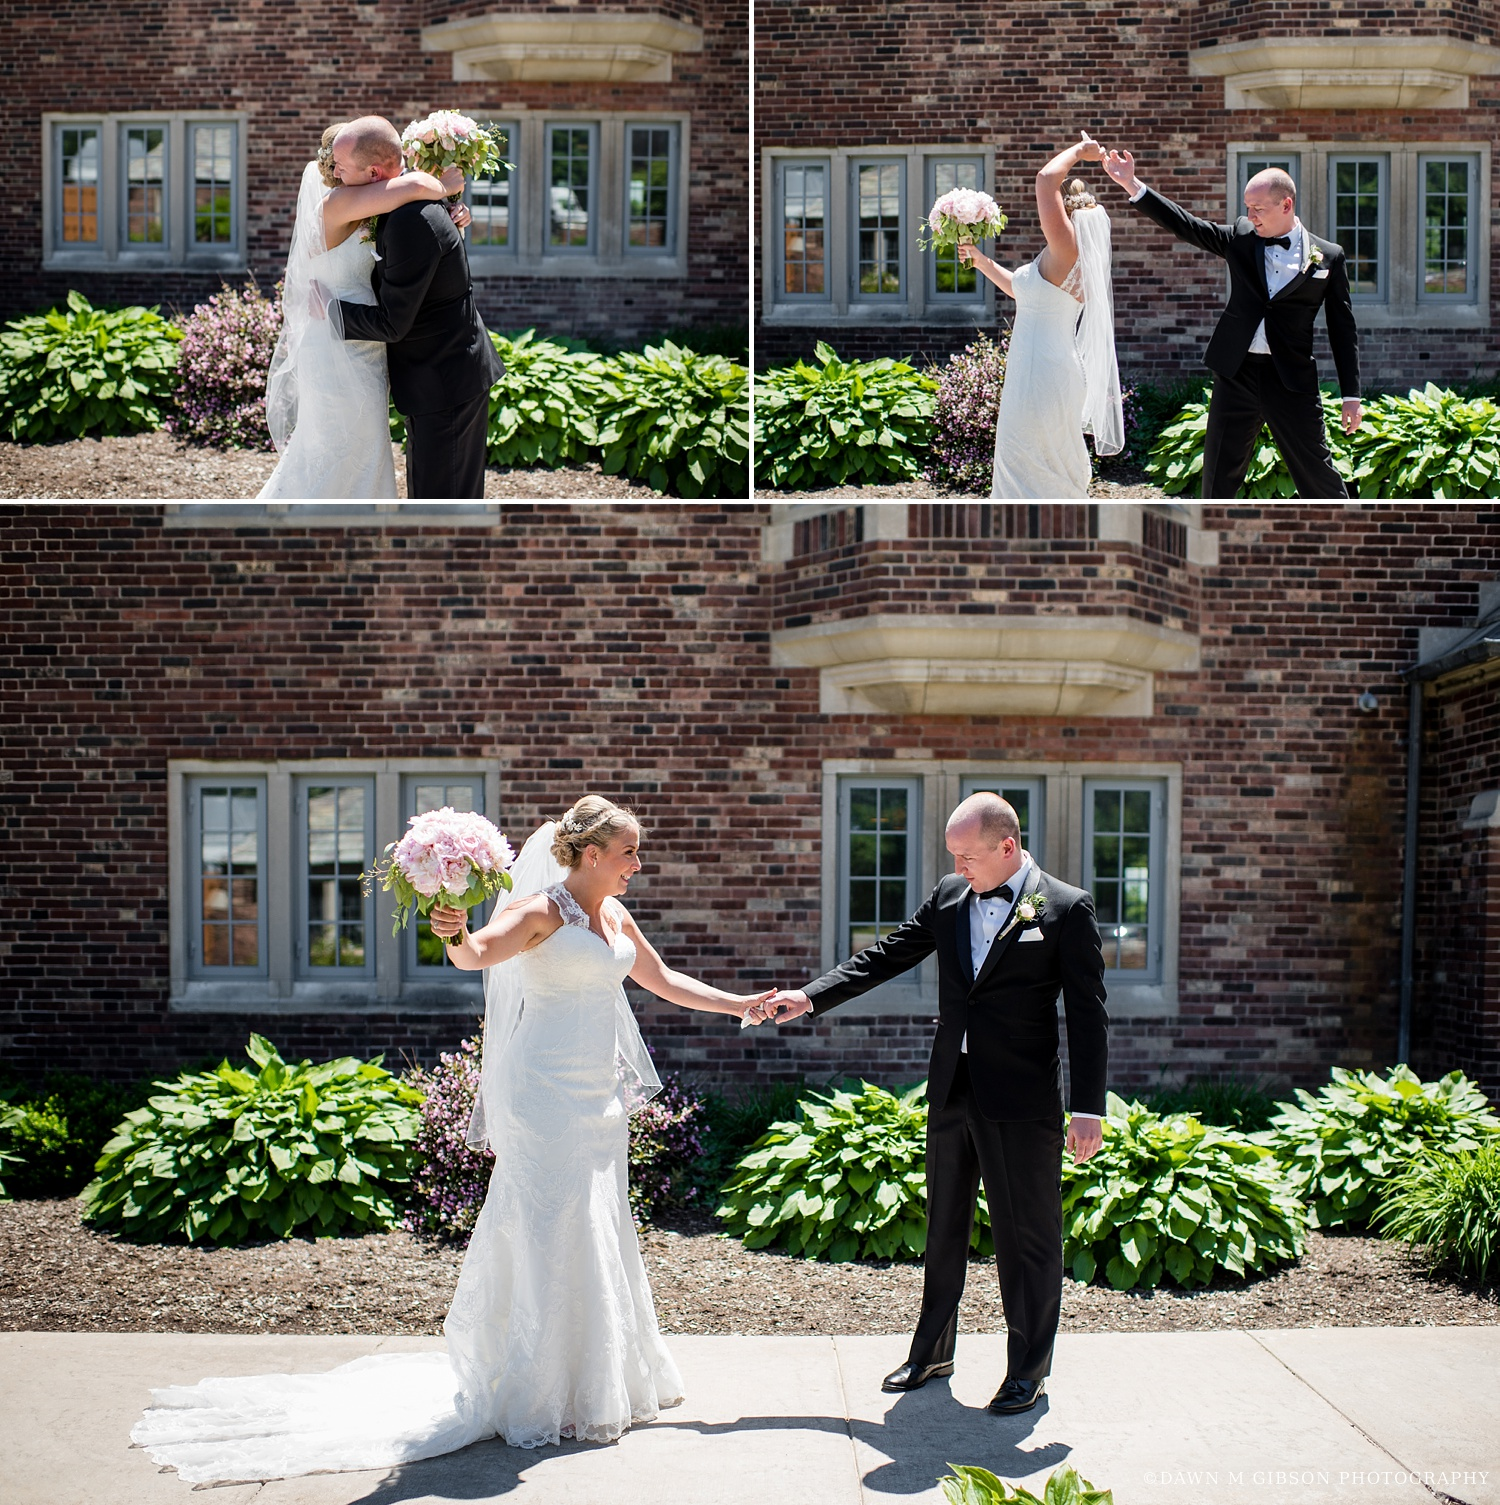 buffalo_wny_rochester_wedding_photographer_dawnmgibsonphotography_strathallan_colgate_rochester_divinity_rochester_wedding_venues_0014.jpg